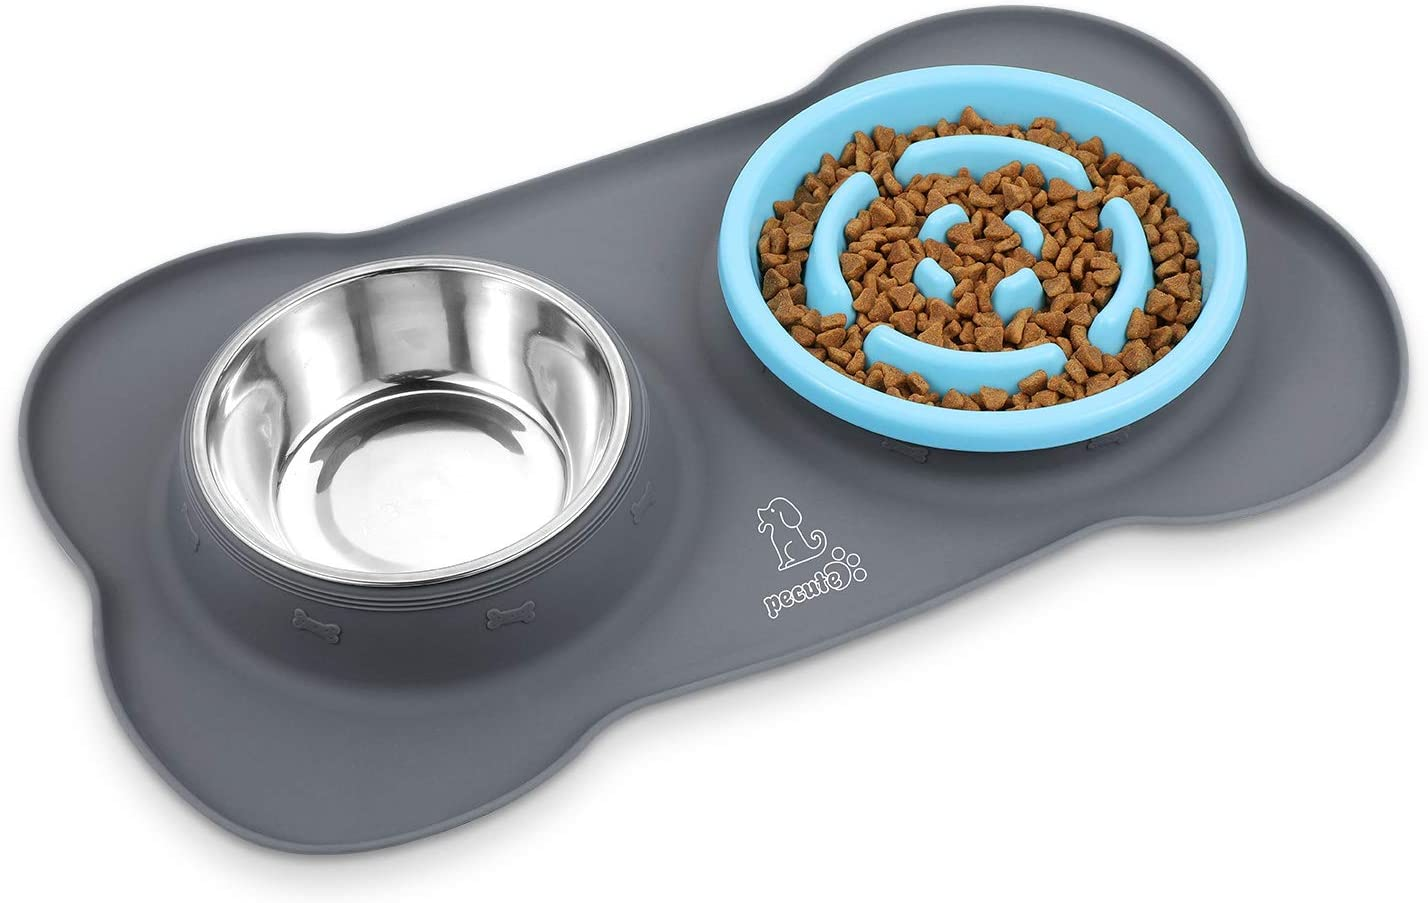 Pecute Dog Bowl Slow Feeder Bloat Stop Pet Bowl Fun Feeder Eco-Friendly Non-Toxic No Choking Healthy Design Bowl with No-Spill Non-Skid Silicone Mat Stainless Steel Water Bowl for Dogs Cats and Pets